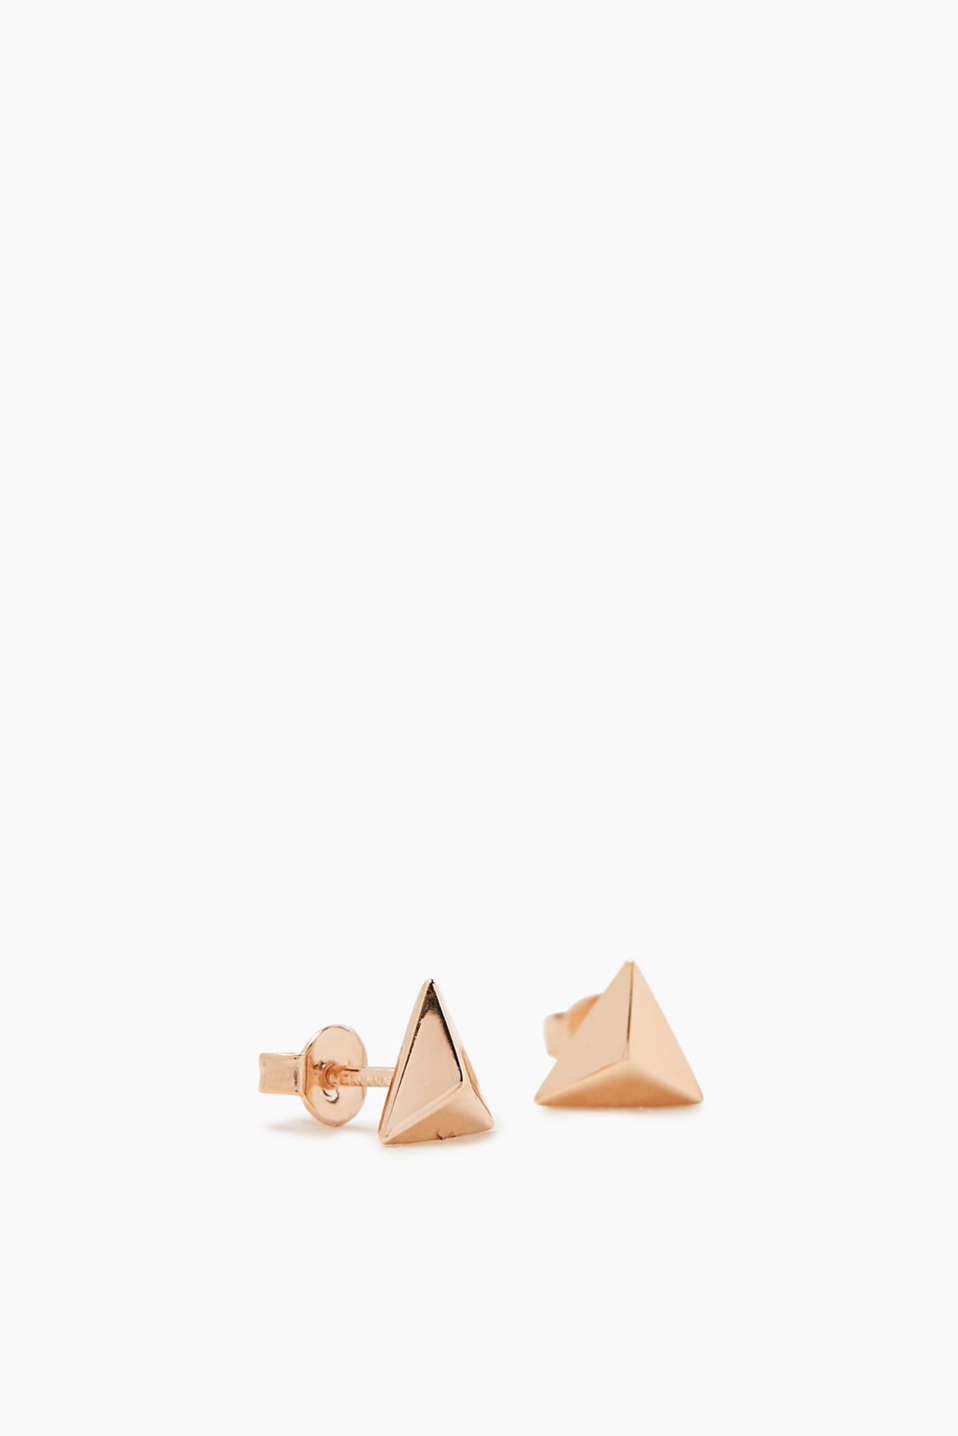 Triangular stud earrings in sterling silver